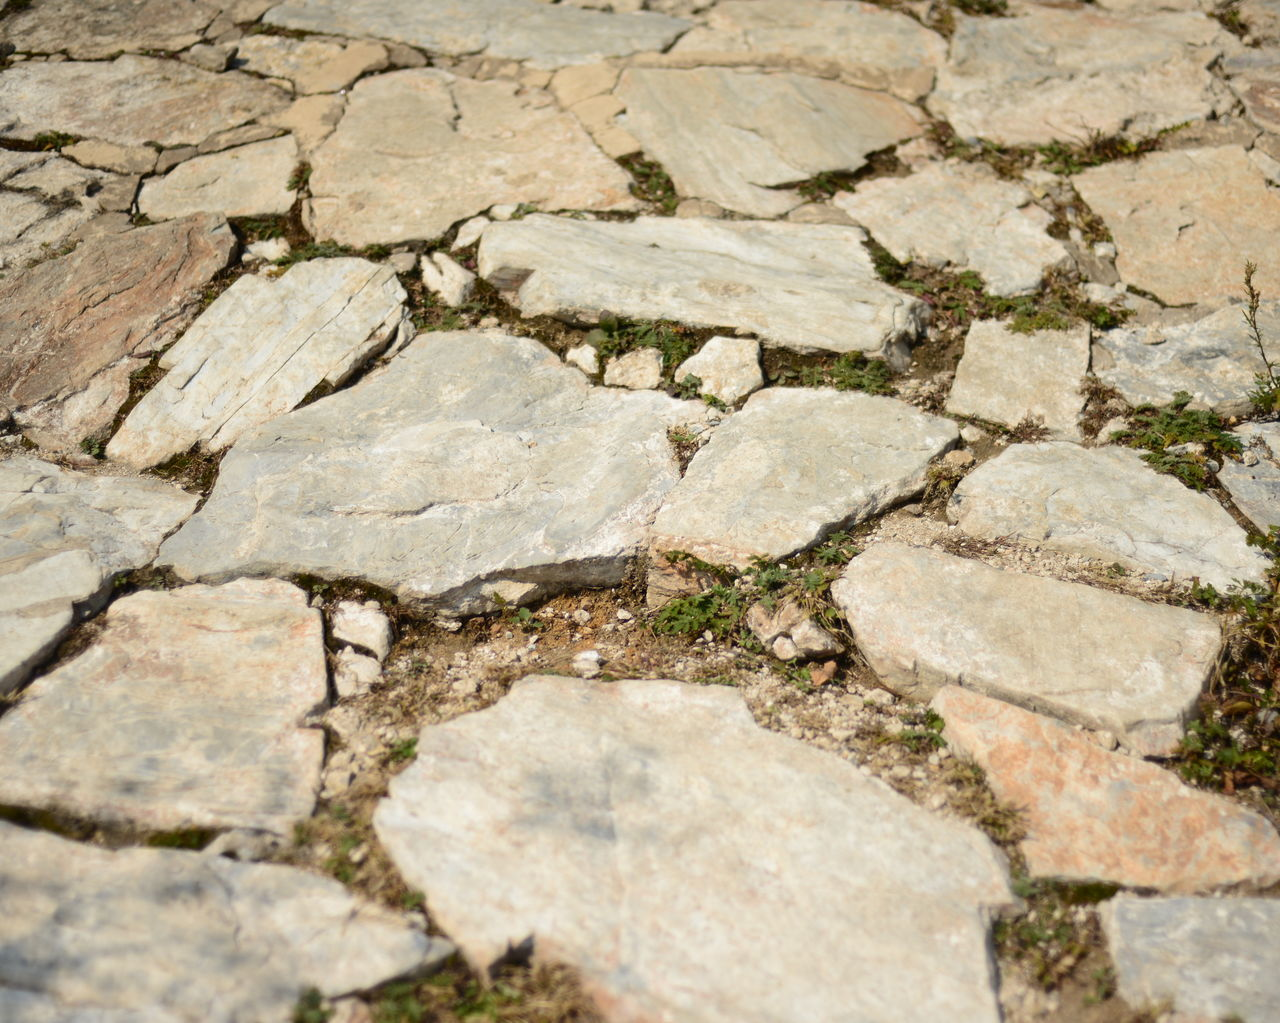 cracked, drought, textured, arid climate, mud, no people, outdoors, backgrounds, rock - object, day, full frame, nature, close-up, puddle, water, landscape